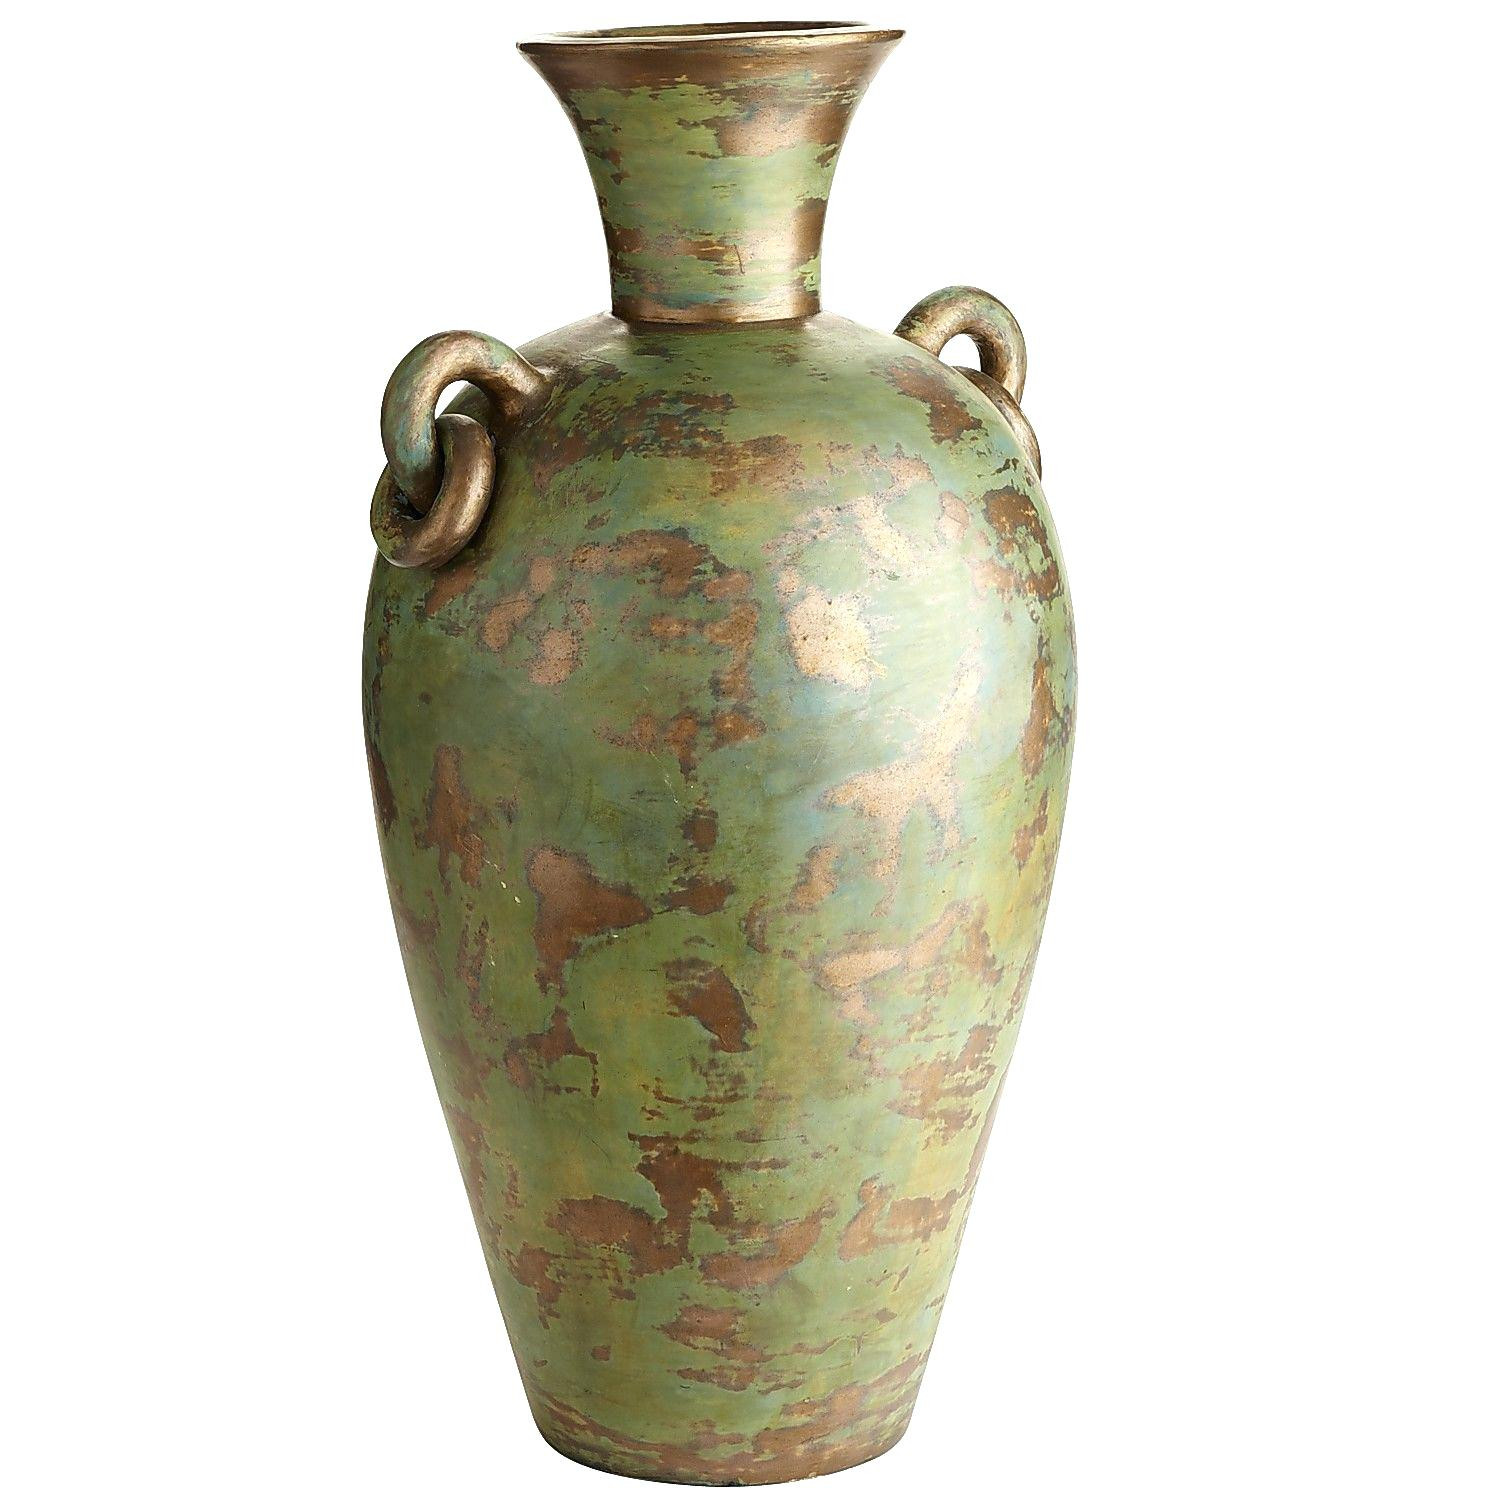 huge vases for sale of ideas fascinating extra large floor vases for interior ideas and for fascinating extra large floor vases for interior decorating ideas fascinating extra large floor vases for